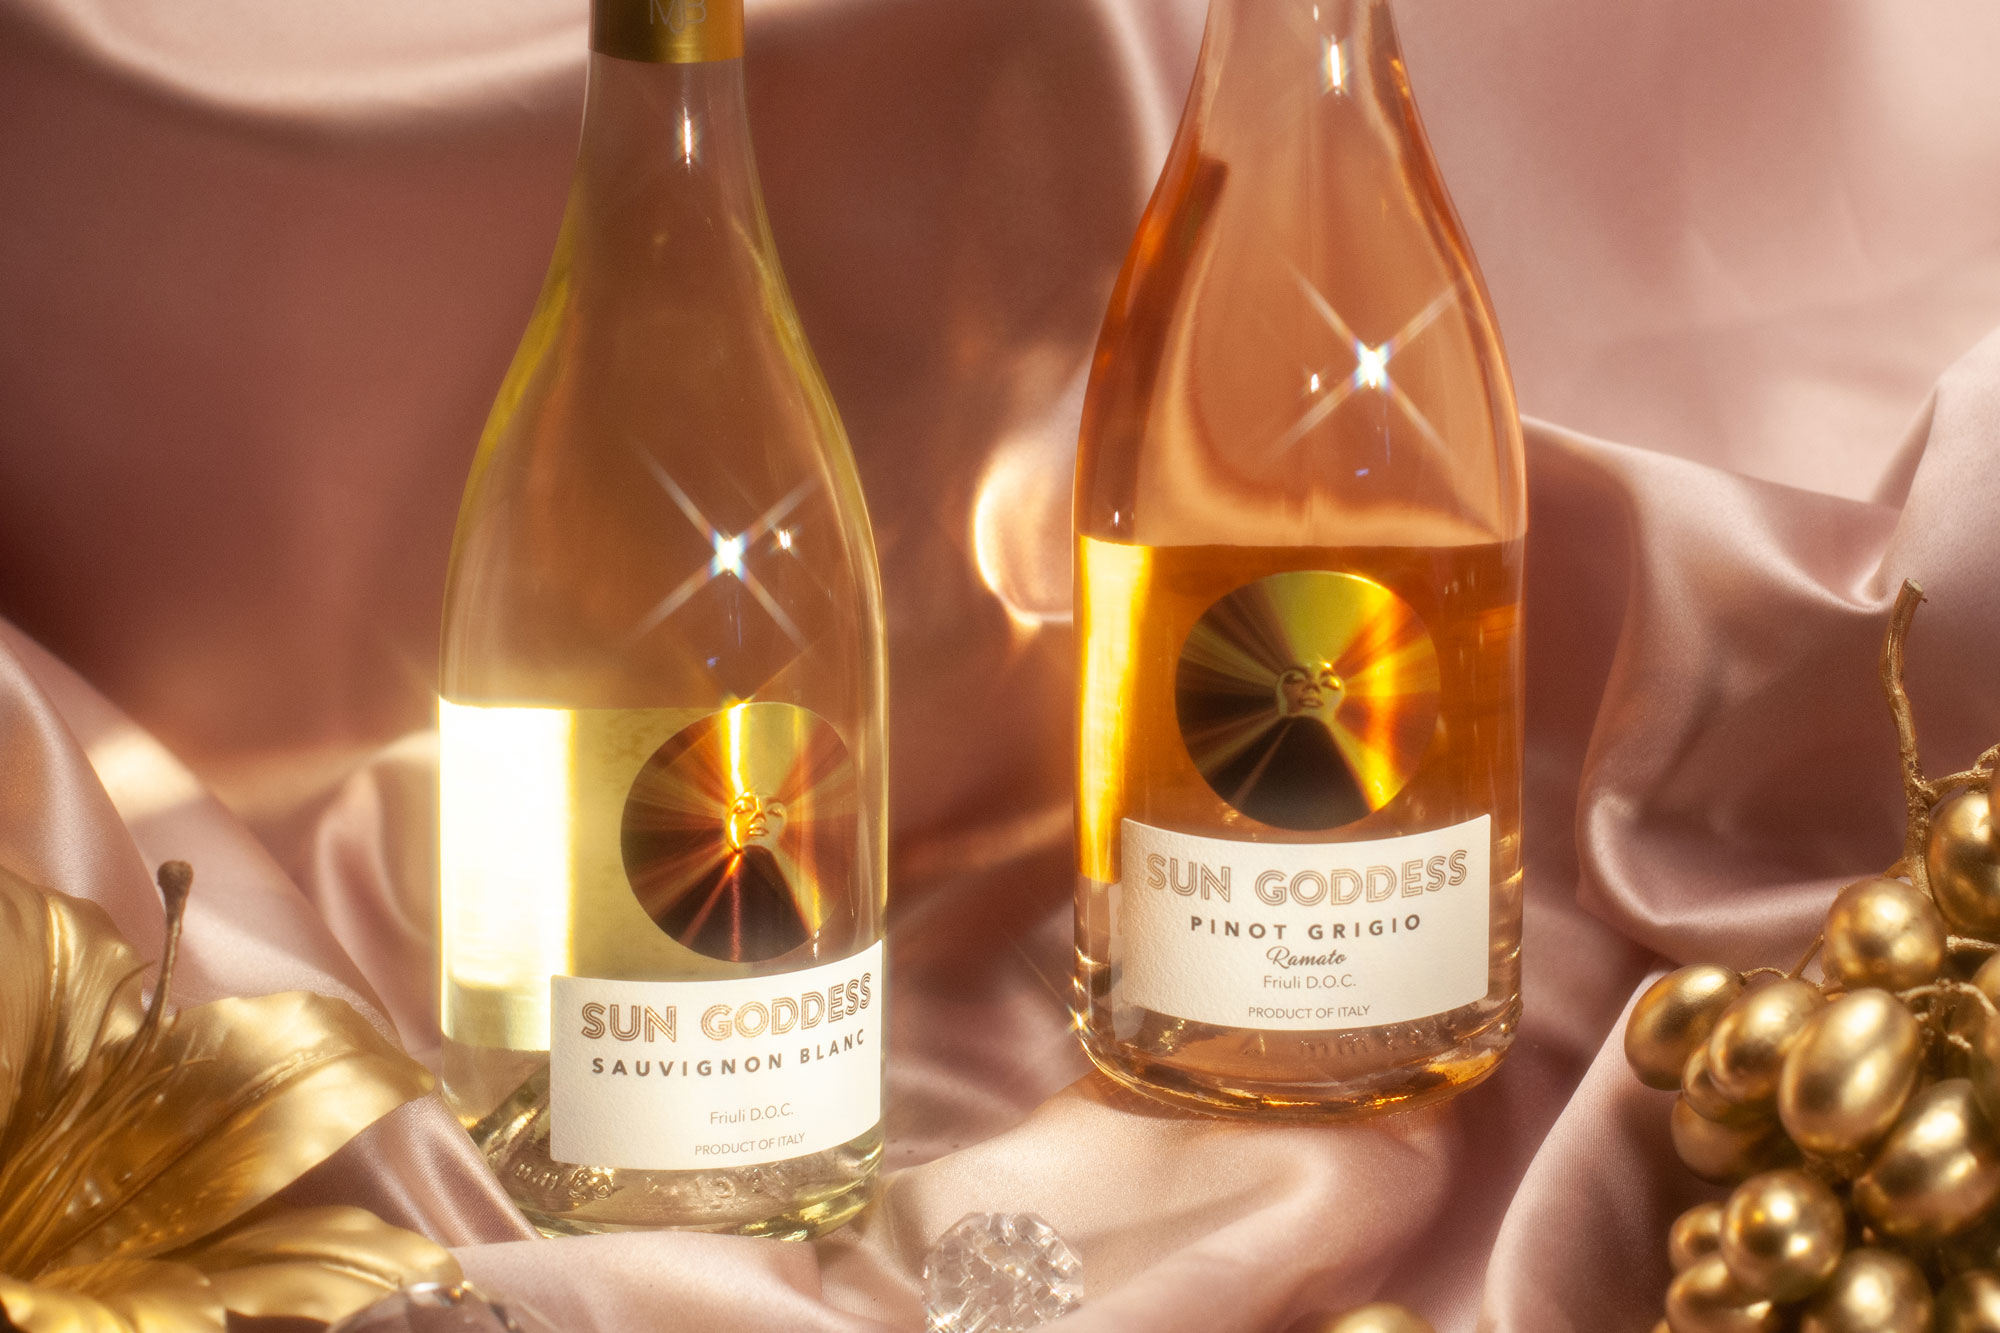 Mary J. Blige Sun Goddess Suvignon Blanc and Pinto Grigio Wine Bottles